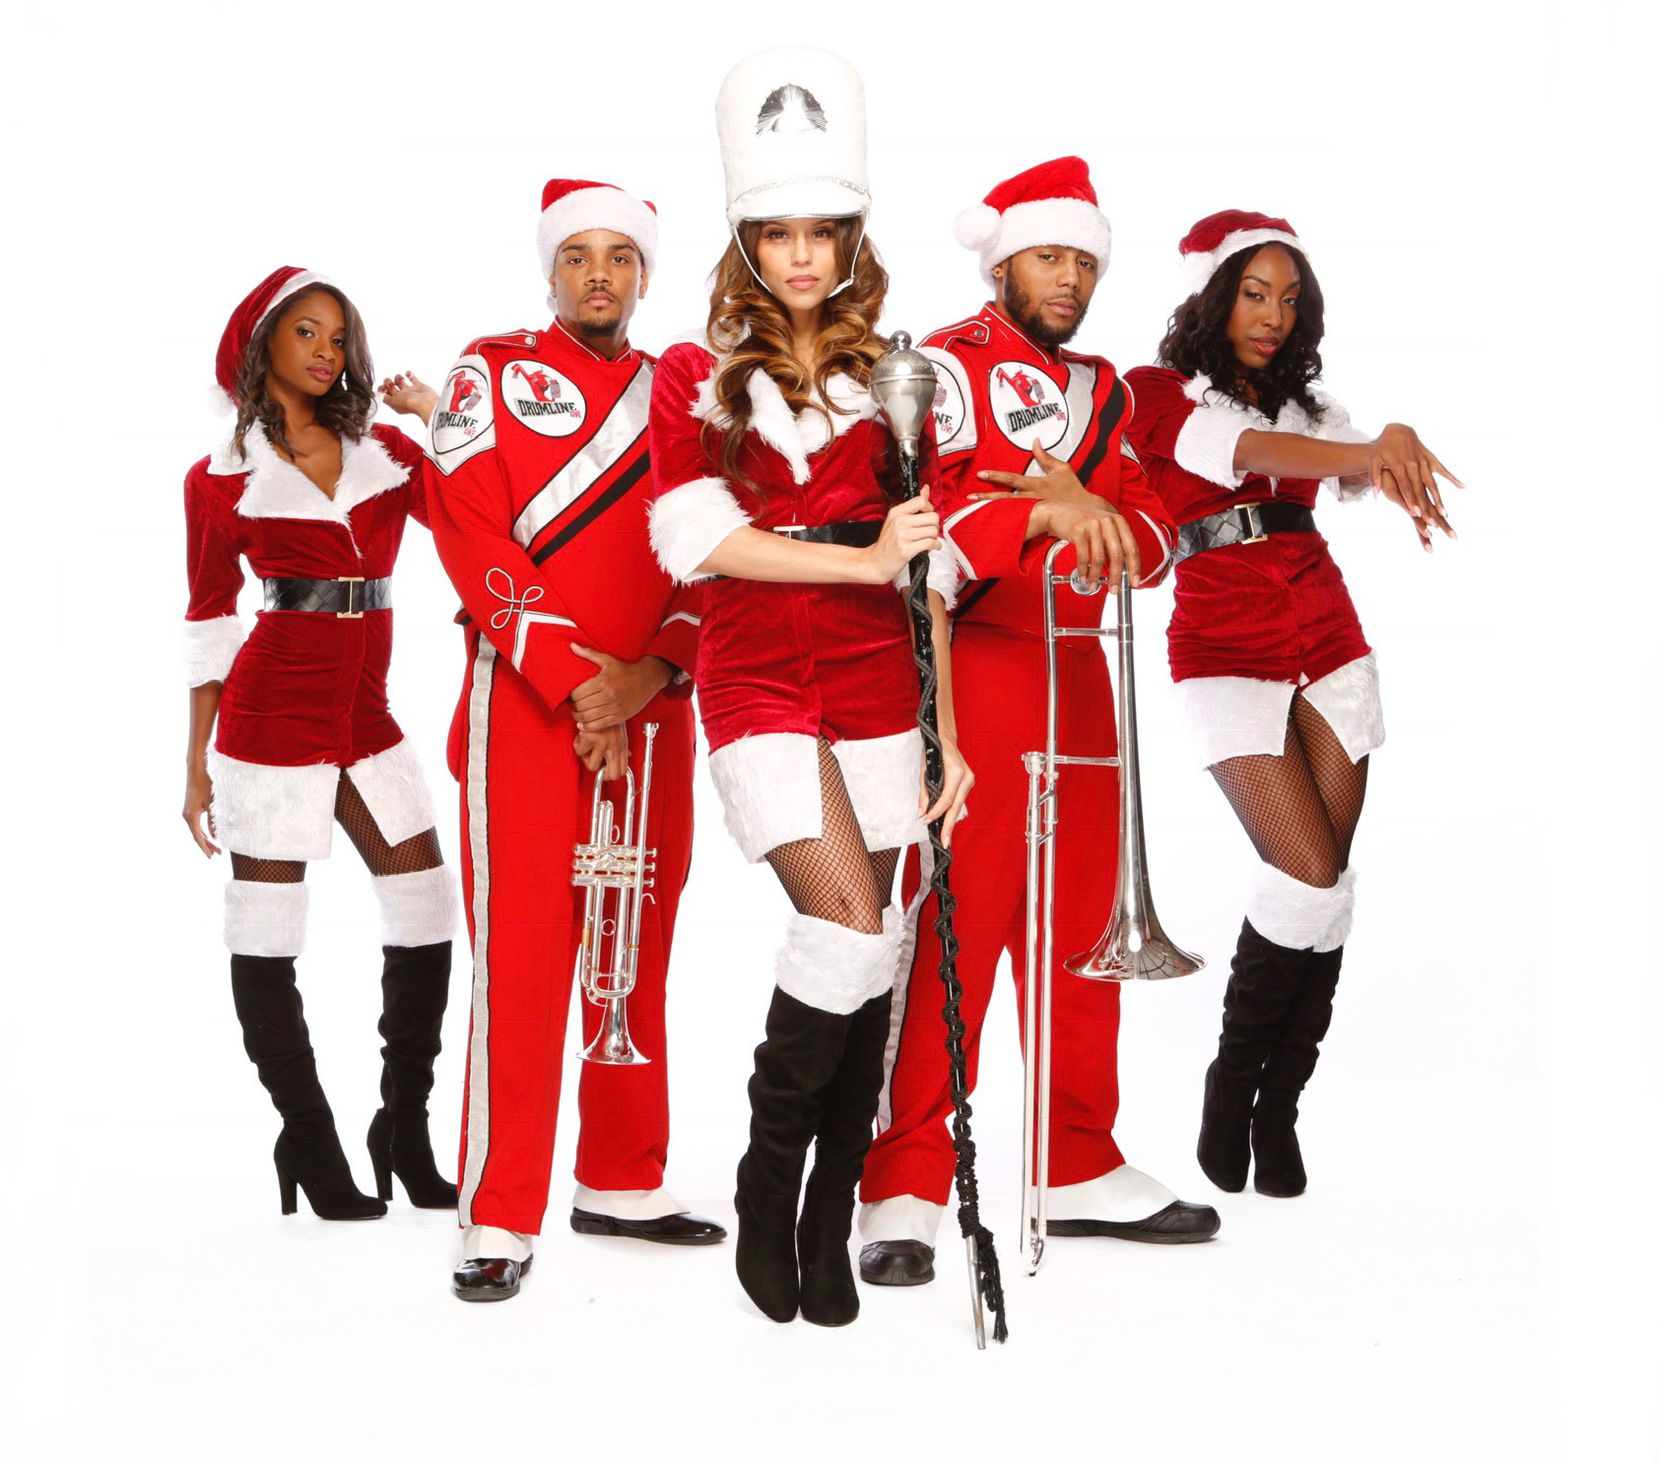 """The """"Drumline Live Holiday Spectacular"""" will feature classic carols mixed with hip-hop beats and gospel, jazz, soul and Motown rhythms."""